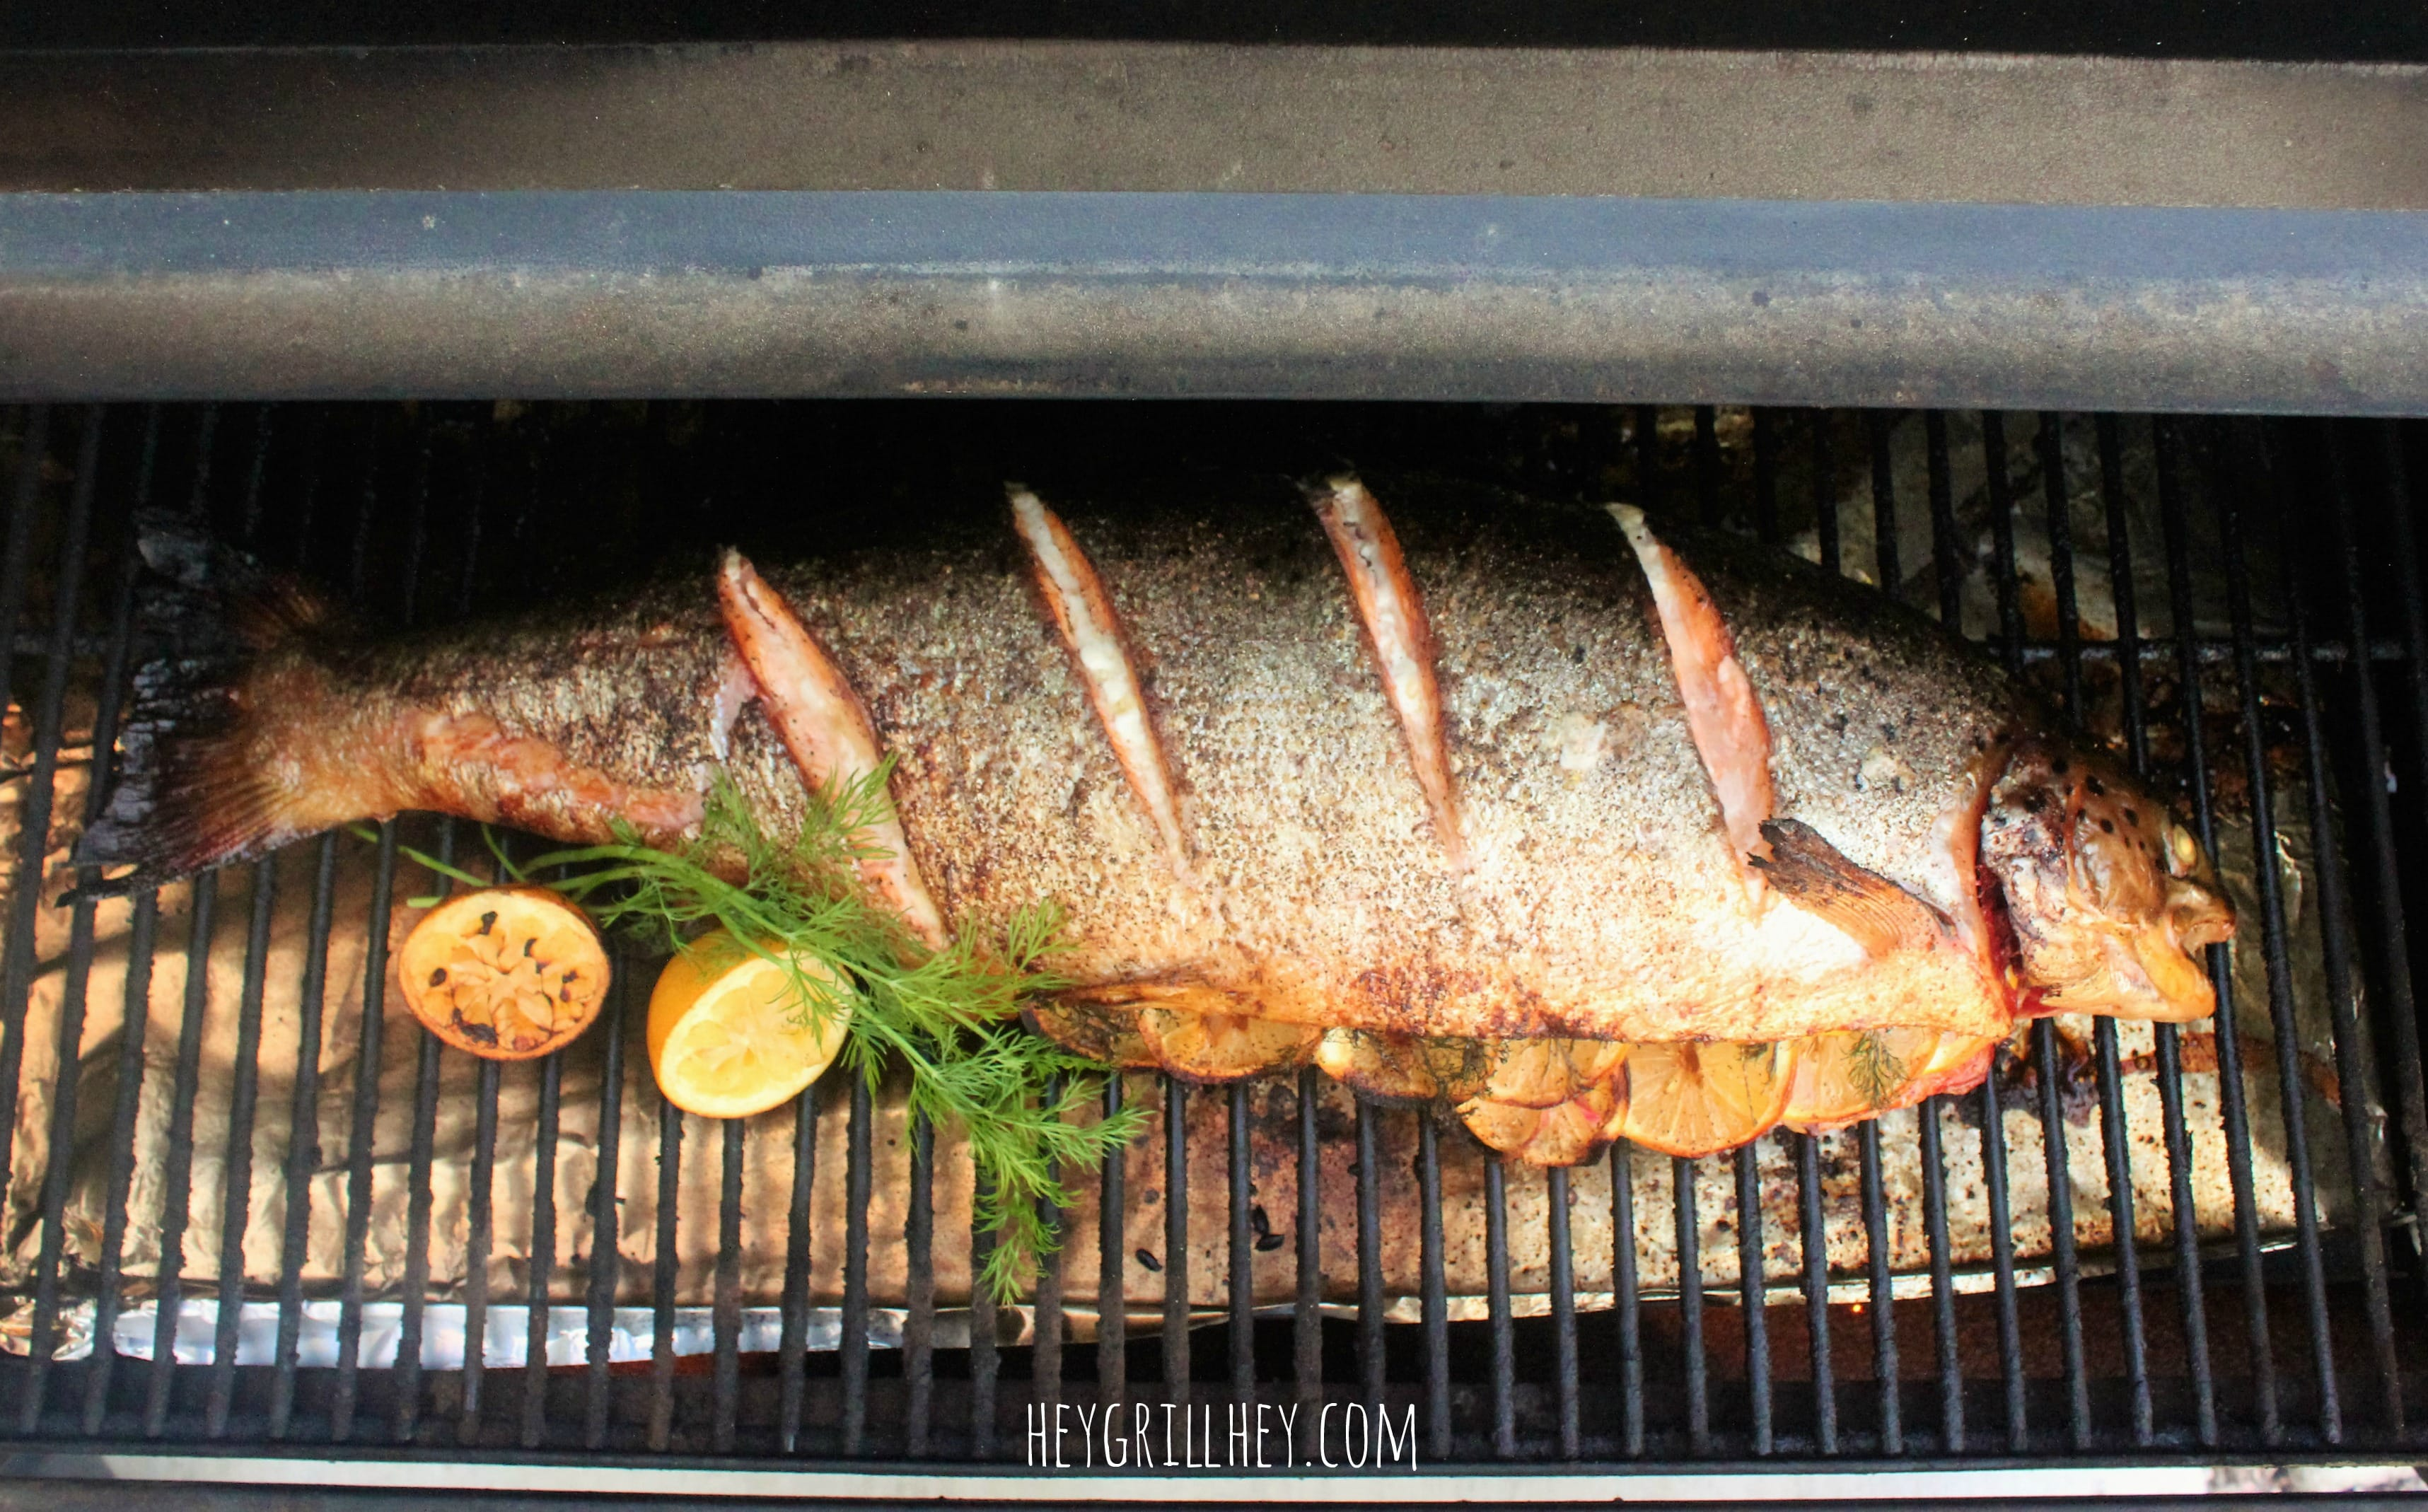 Grilled Whole Salmon on a grill seasoned and stuffed with lemon and herbs.